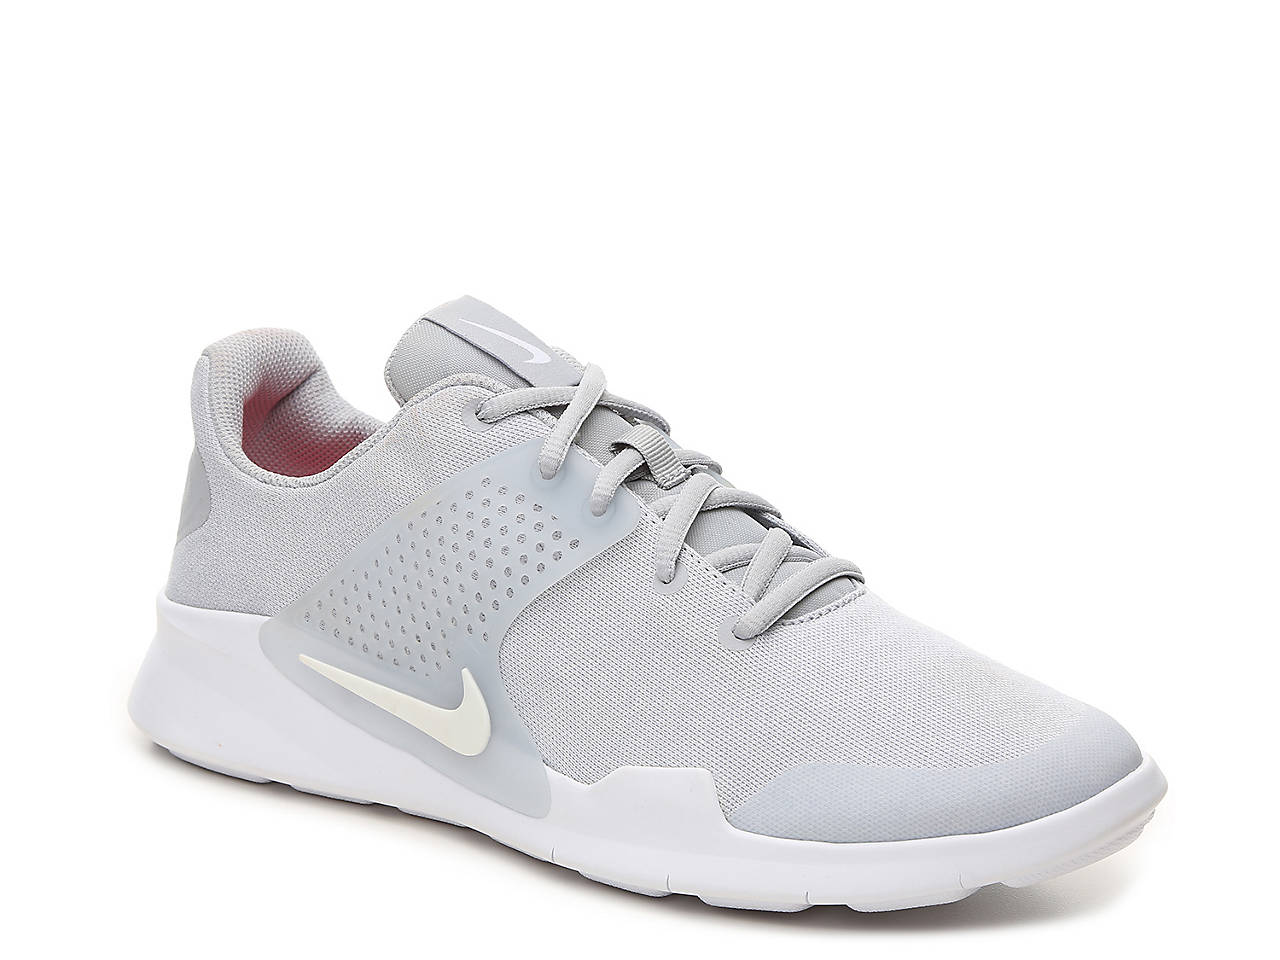 d7175cb86270 Nike Arrowz Sneaker - Men s Men s Shoes